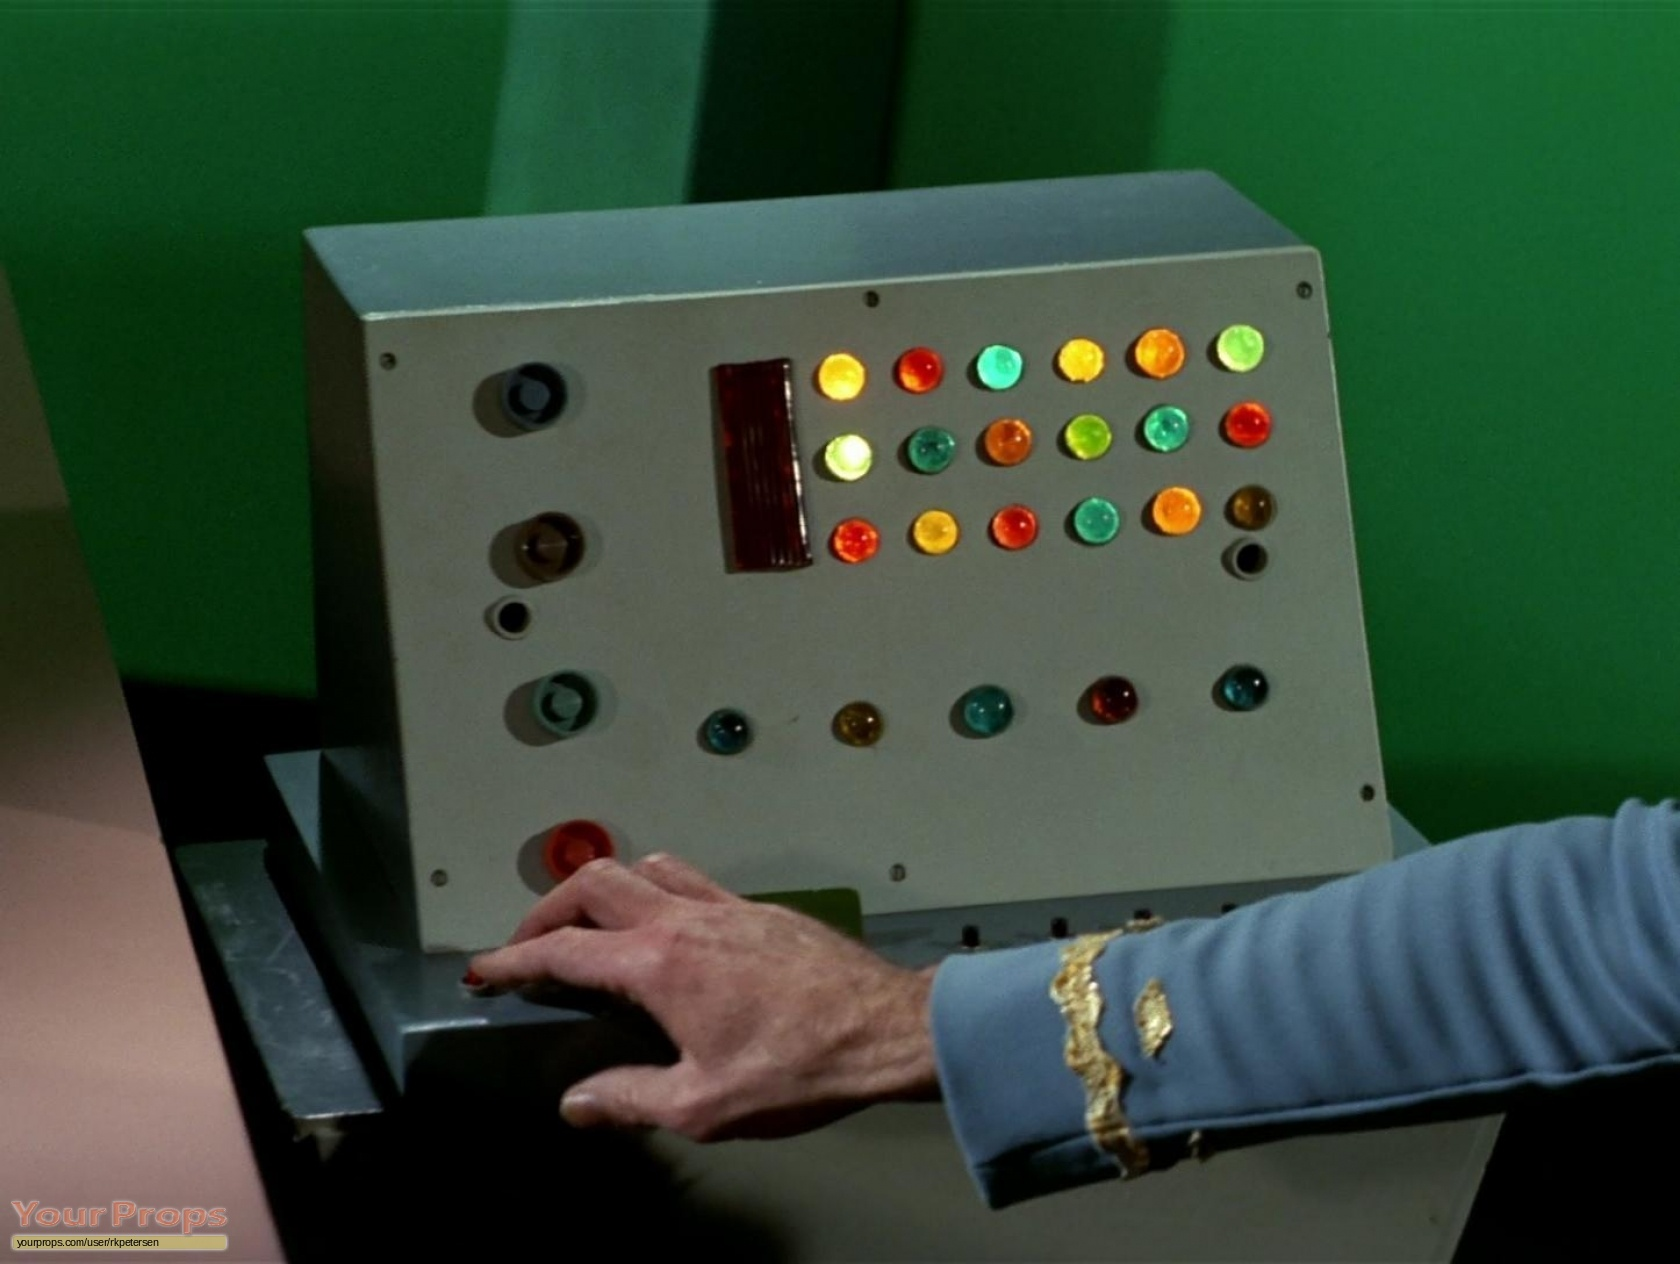 files/images/star-trek-the-original-series-desktop-computer-3.jpg